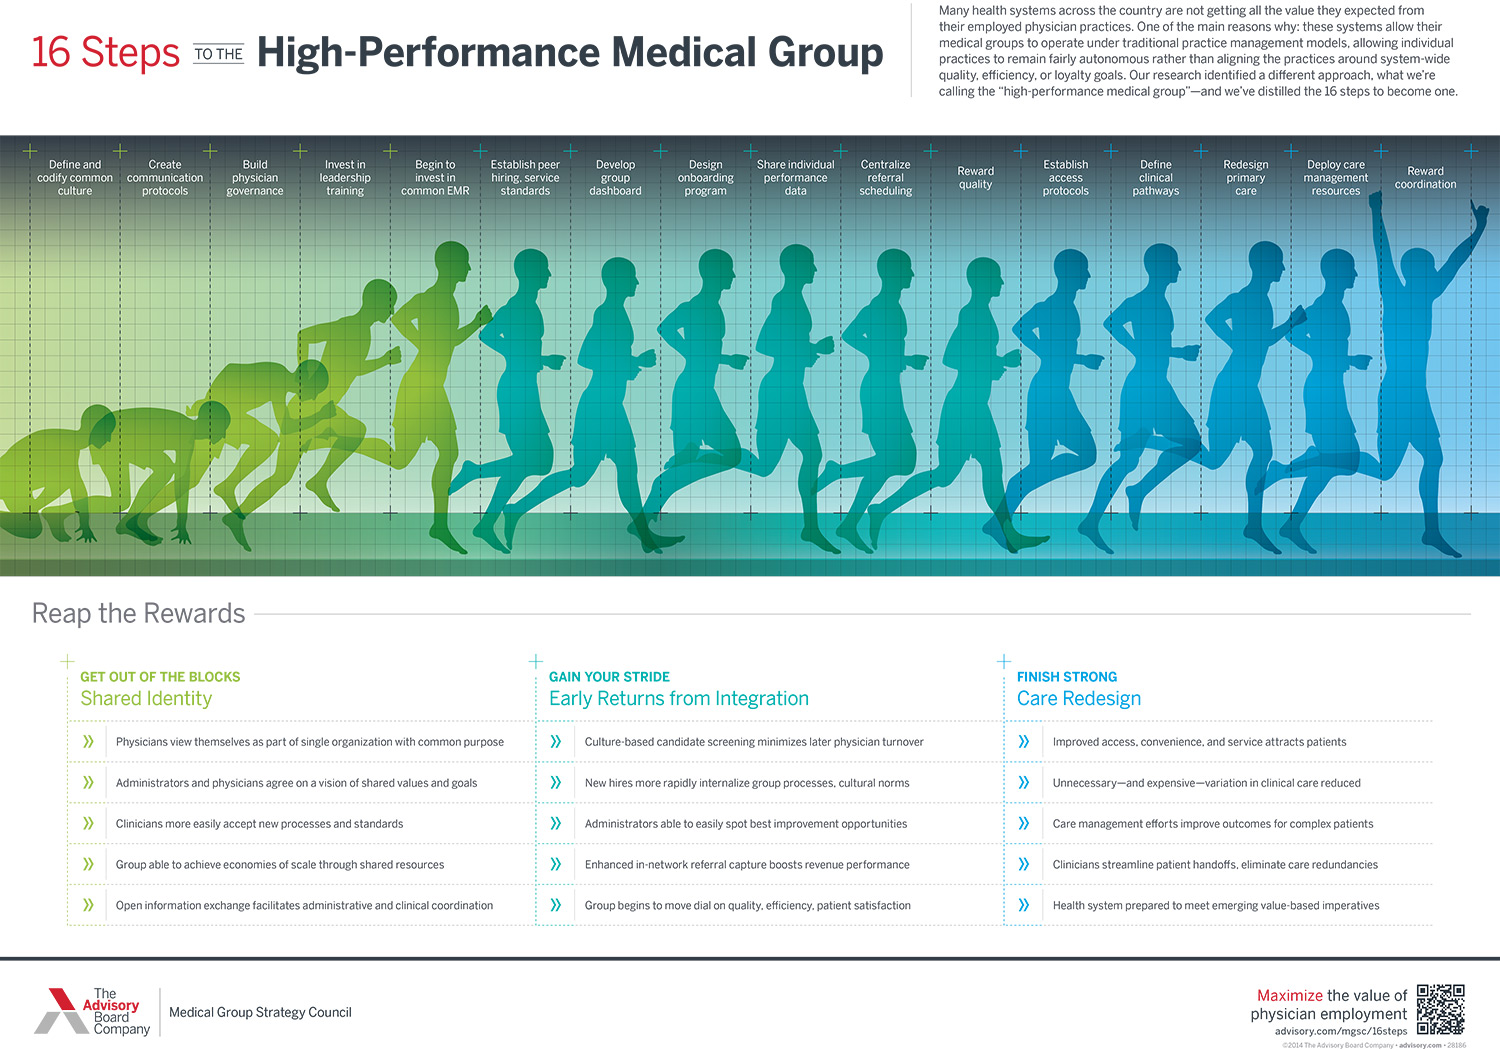 The high-performance medical group